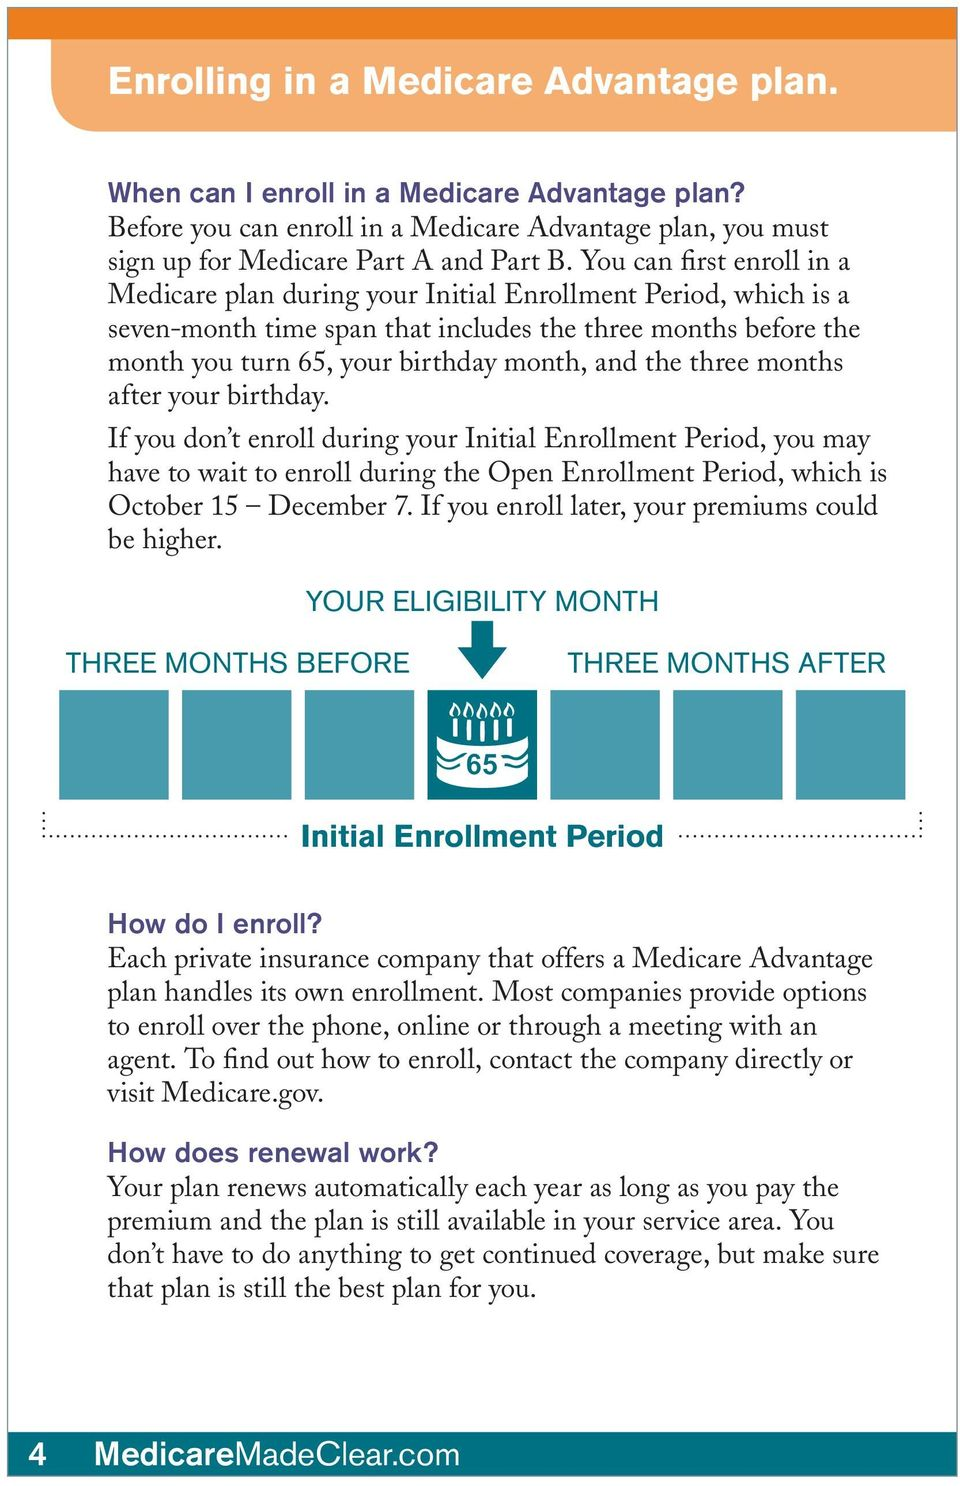 the three months after your birthday. If you don t enroll during your Initial Enrollment Period, you may have to wait to enroll during the Open Enrollment Period, which is October 15 December 7.